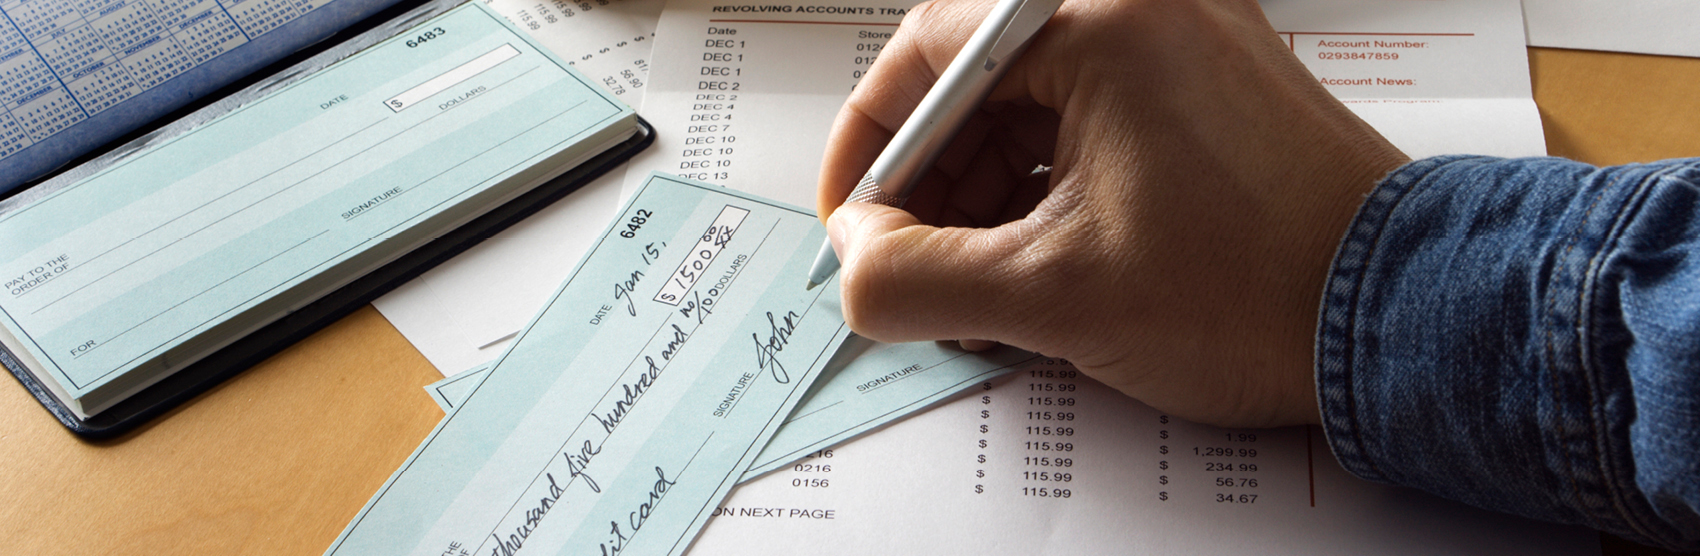 Picture of bills and person writing a check